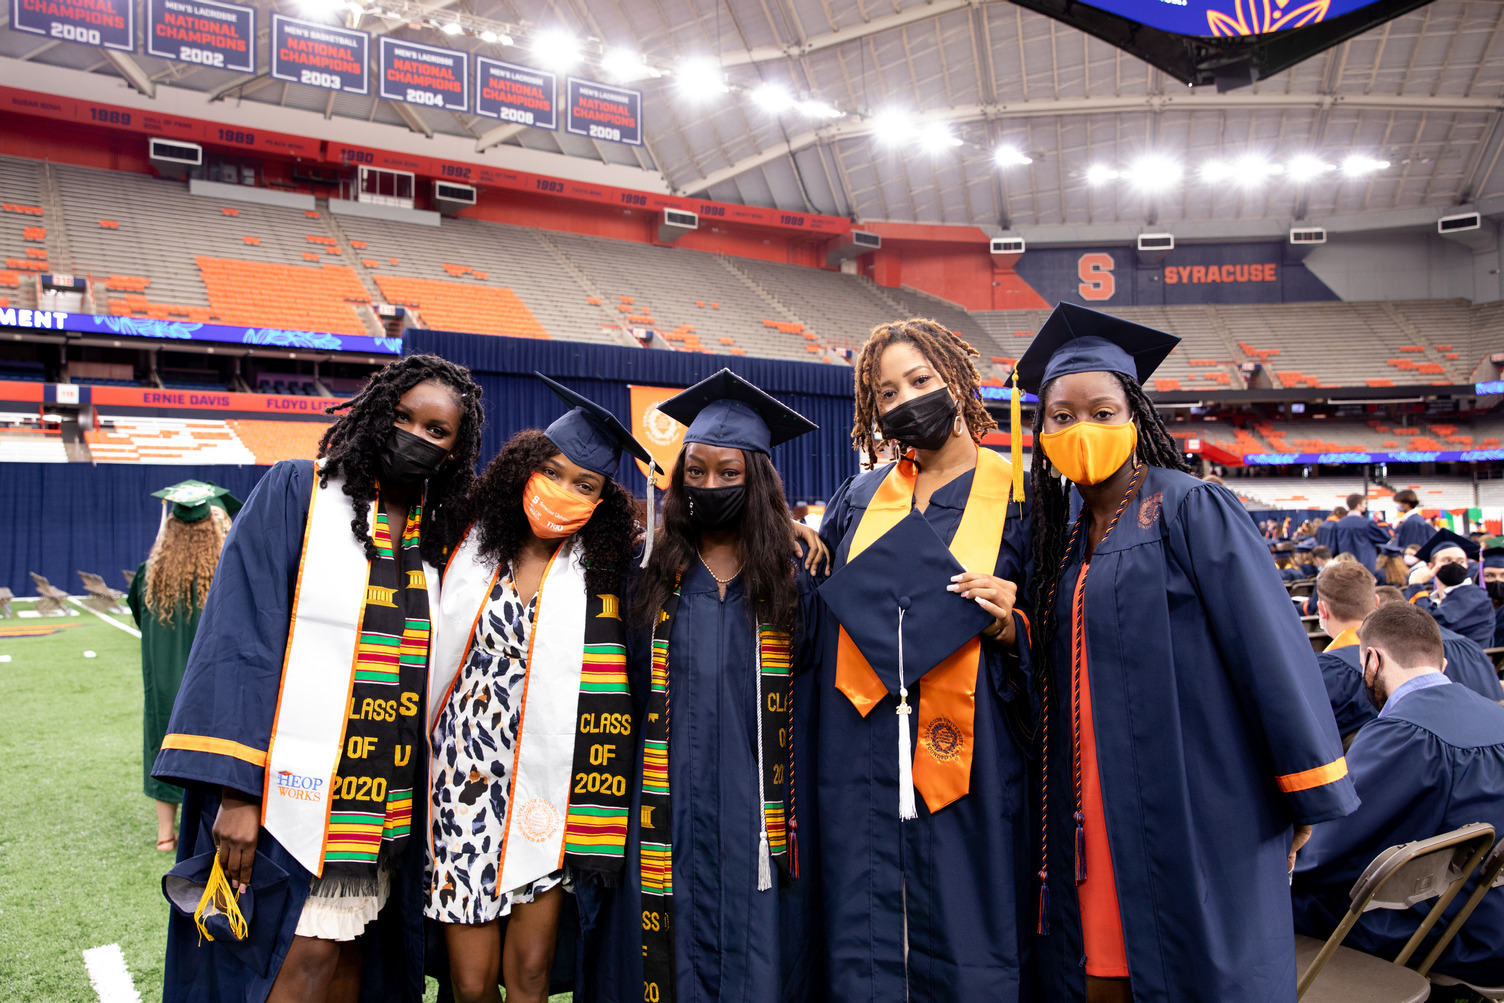 group of people in caps and gowns at 2020 Commencement, Sept. 19, 2021, in the stadium